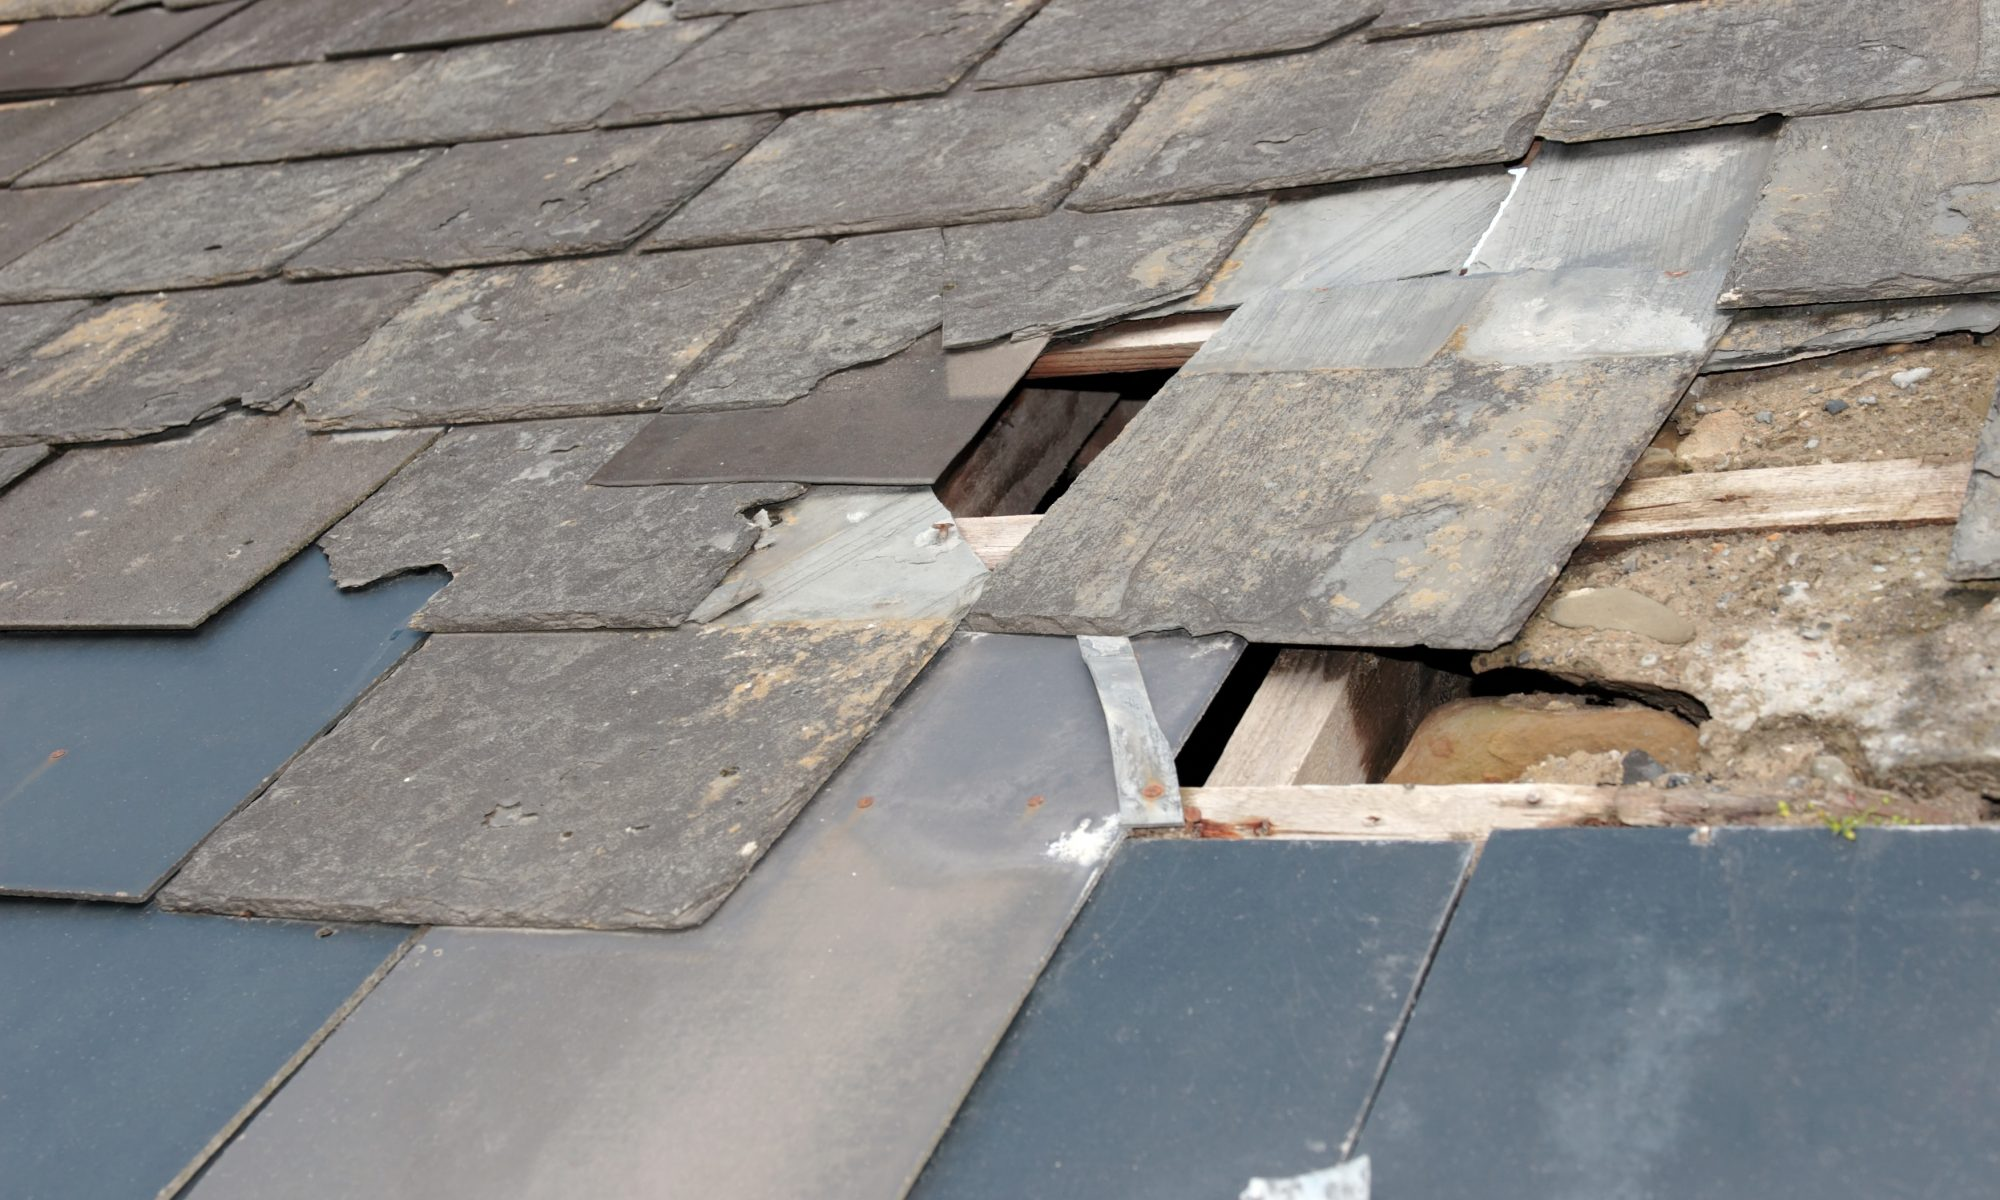 Roof damage due to storm or decay